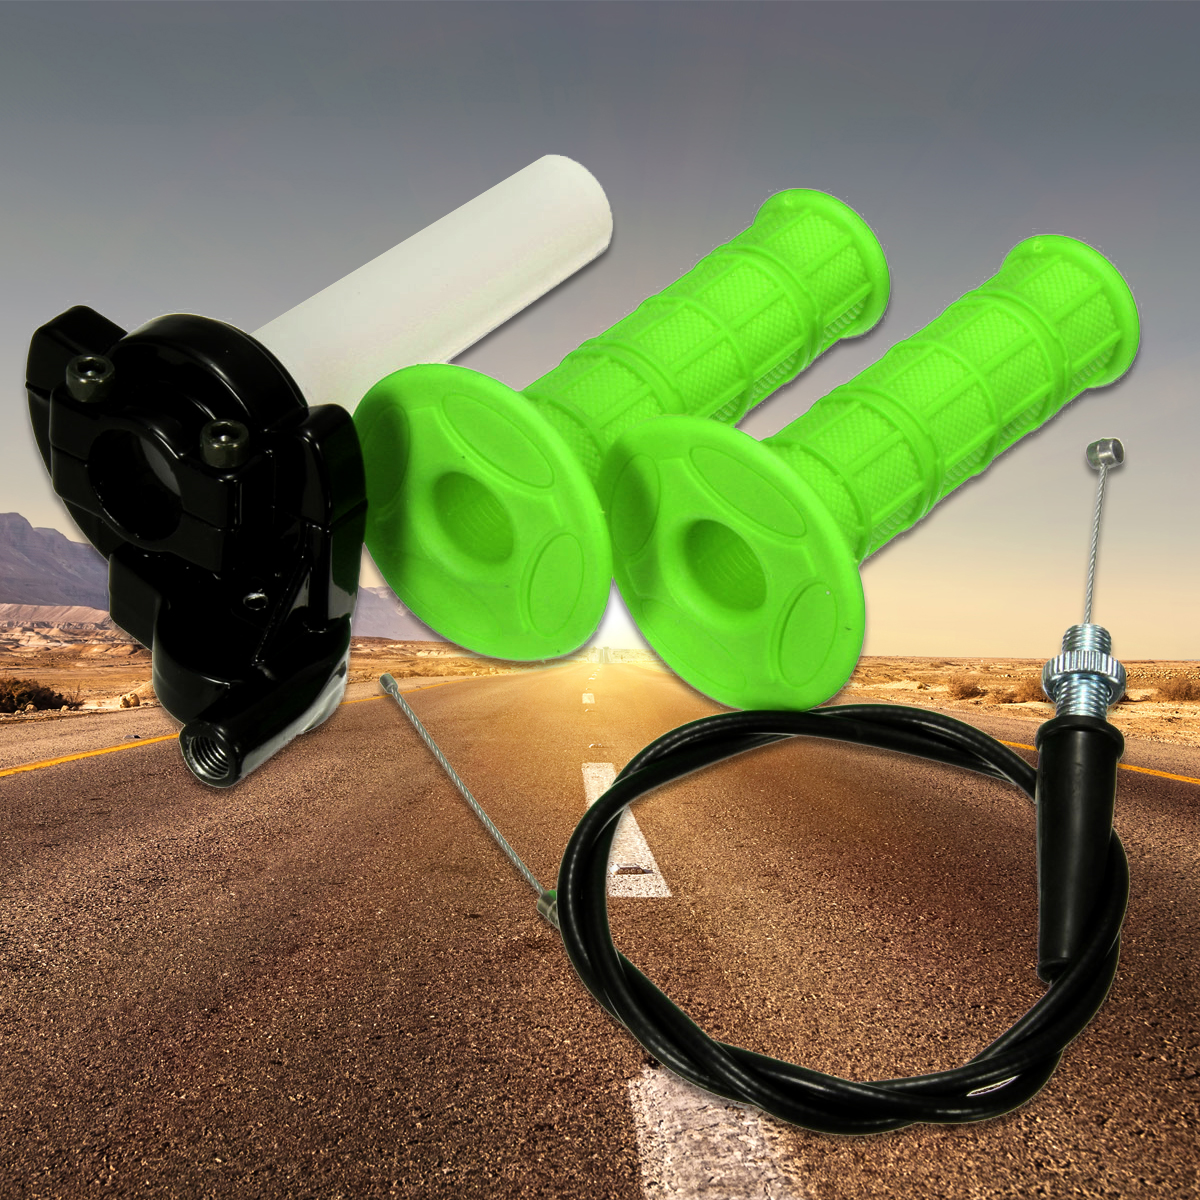 """Quick Action Throttle Grip Twist Cable For 90 110 125cc ATV Pit Dirt Bike 22mm 7/8"""" Handlebar Green"""